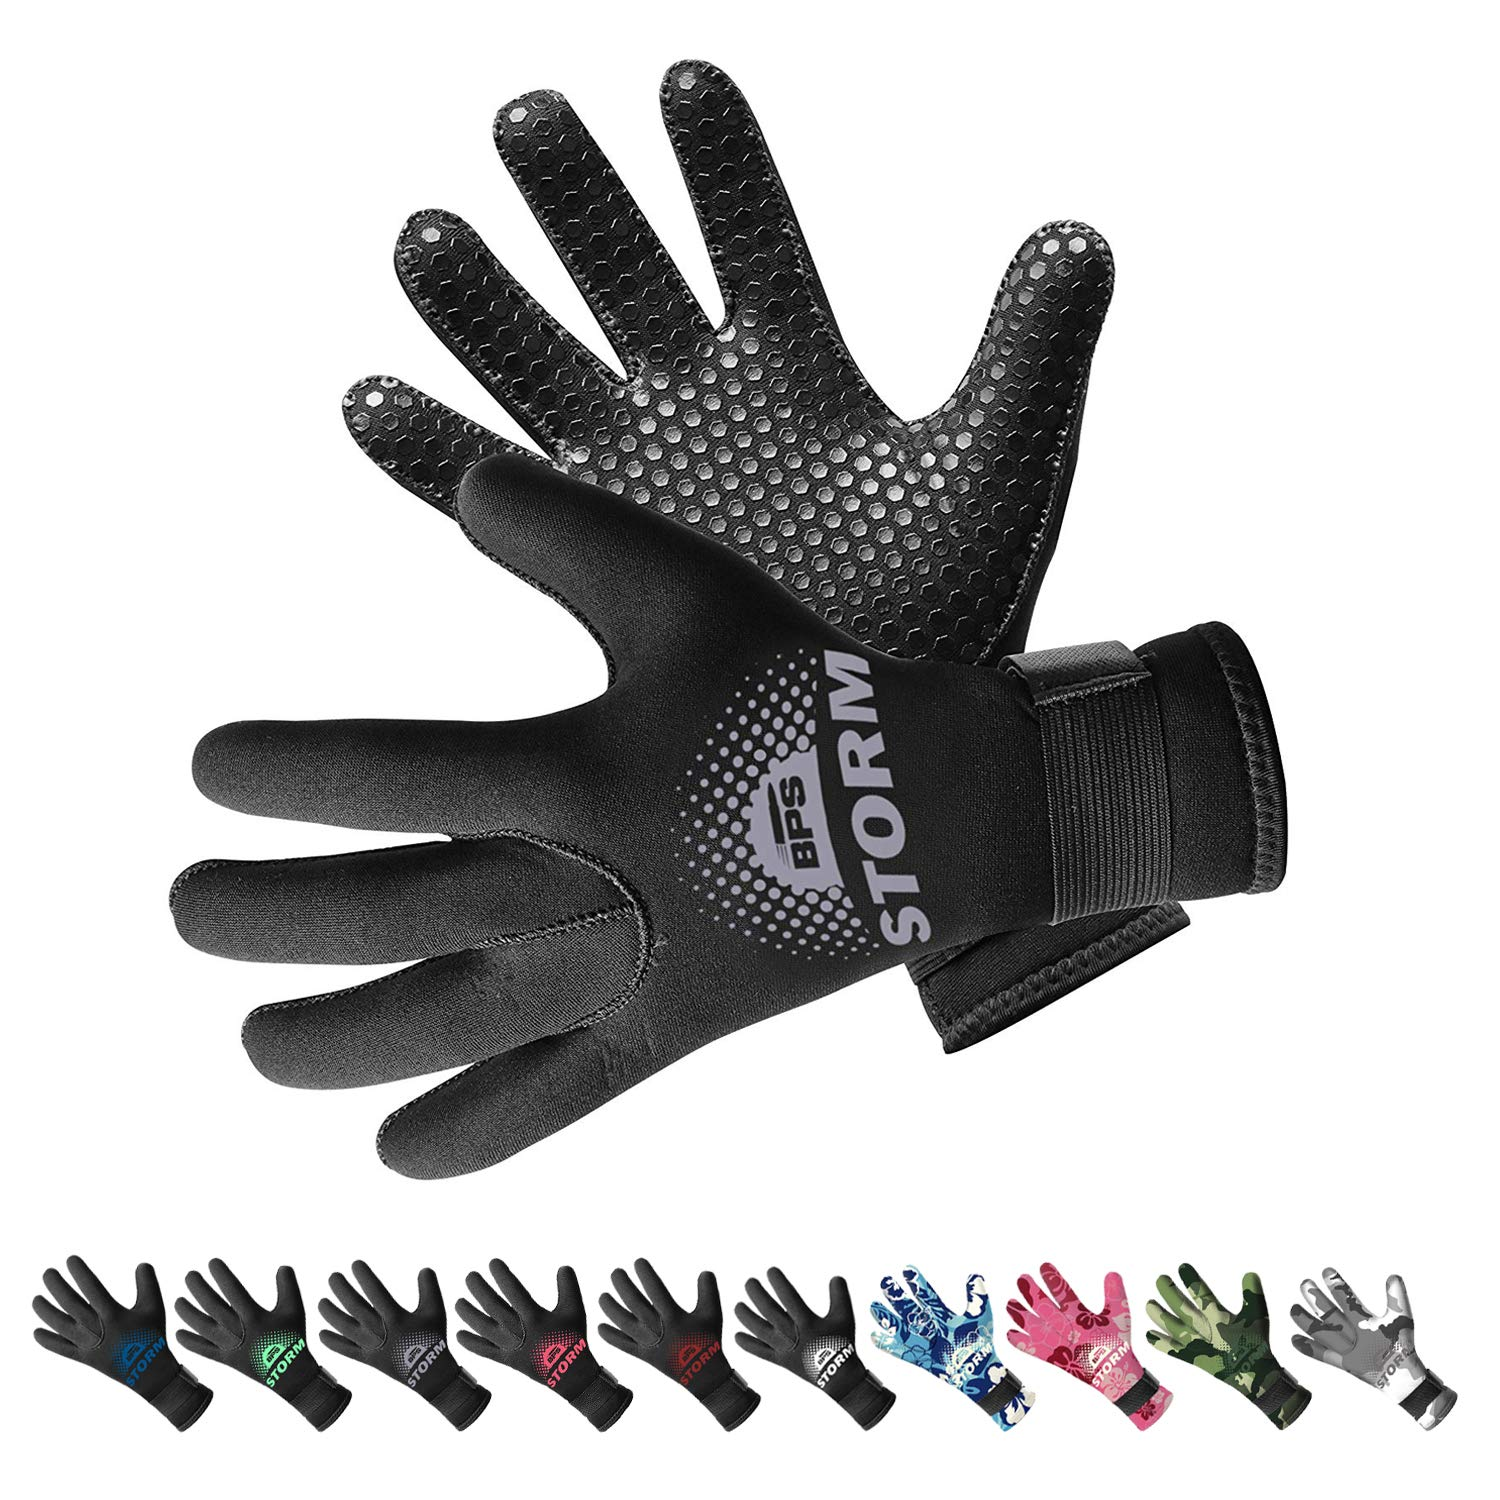 BPS 3mm Neoprene Diving Gloves with Anti Slip Palm - Full Finger Gloves for Scuba Diving, Snorkeling, Surfing, Paddleboarding, and Other Water Sports - for Kids and Adults (Black/Lilac Grey, Large) by BPS